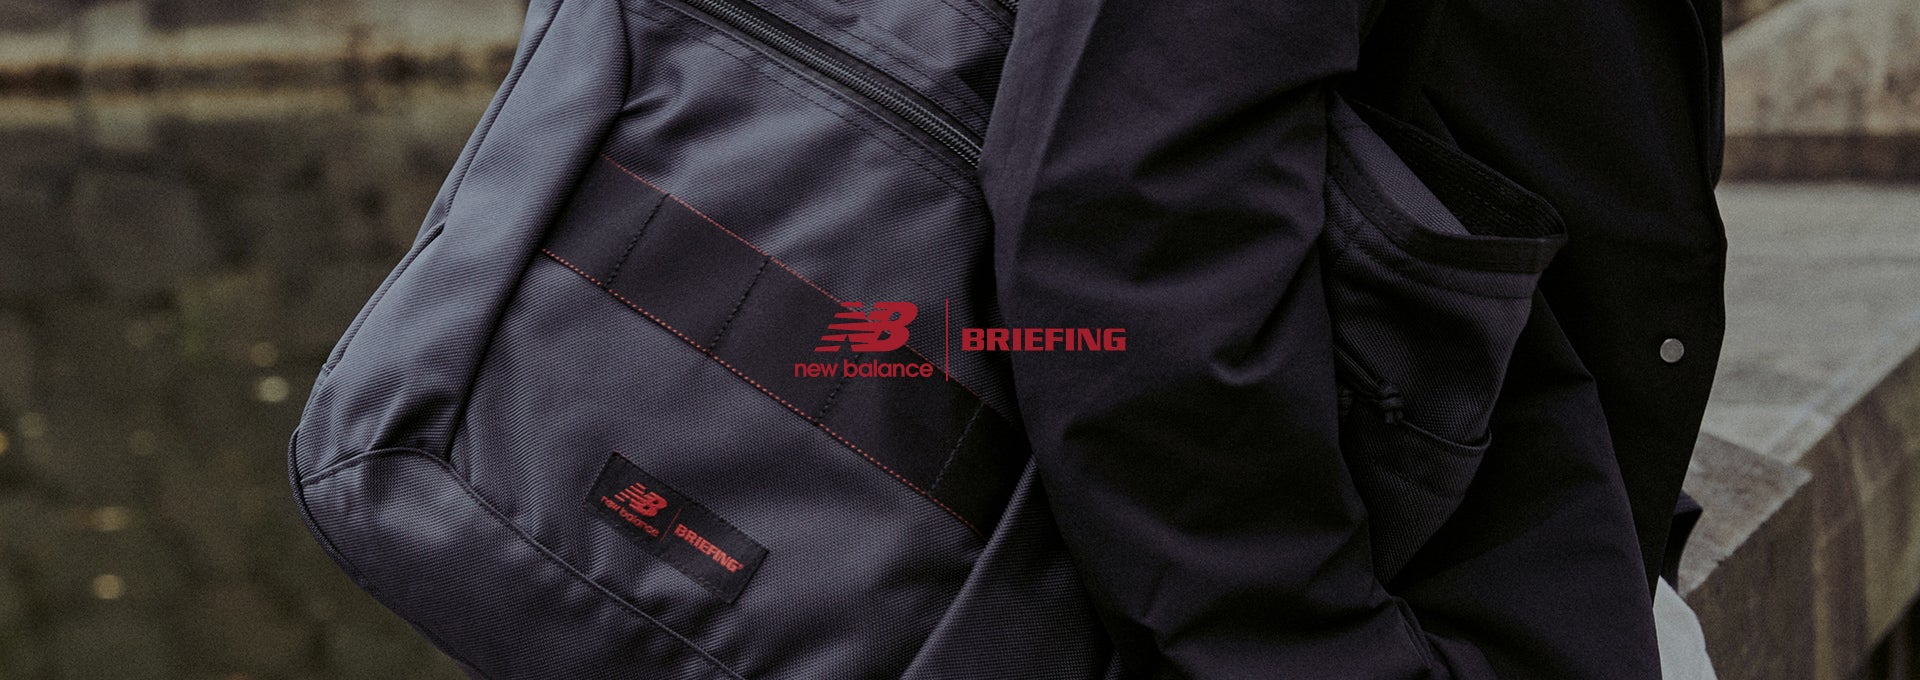 New Balance. BRIEFING